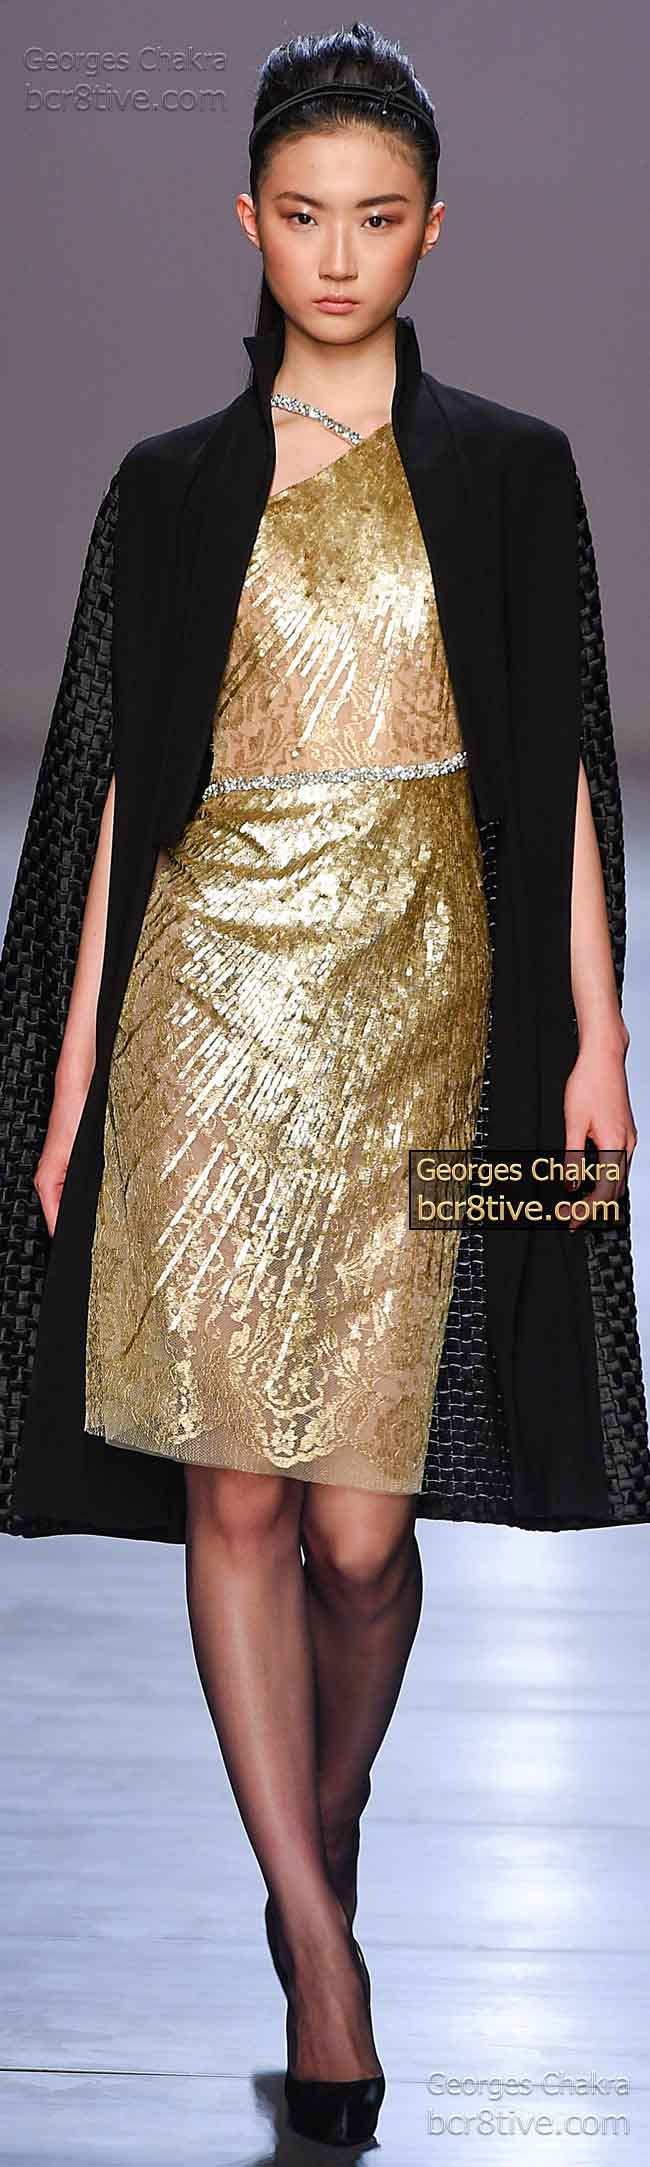 Georges Chakra Fall Winter 2014-15